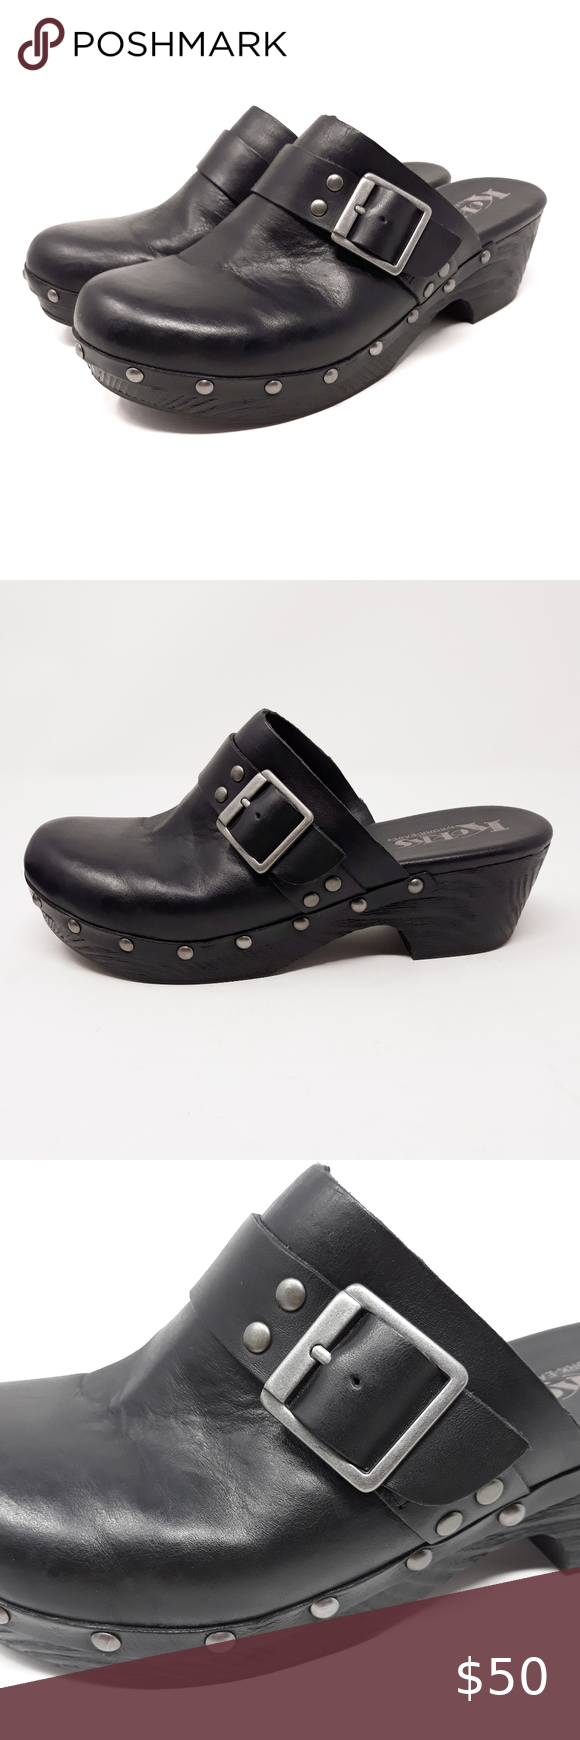 Korks by Kork Ease Kerstin Clog in Black Korks by